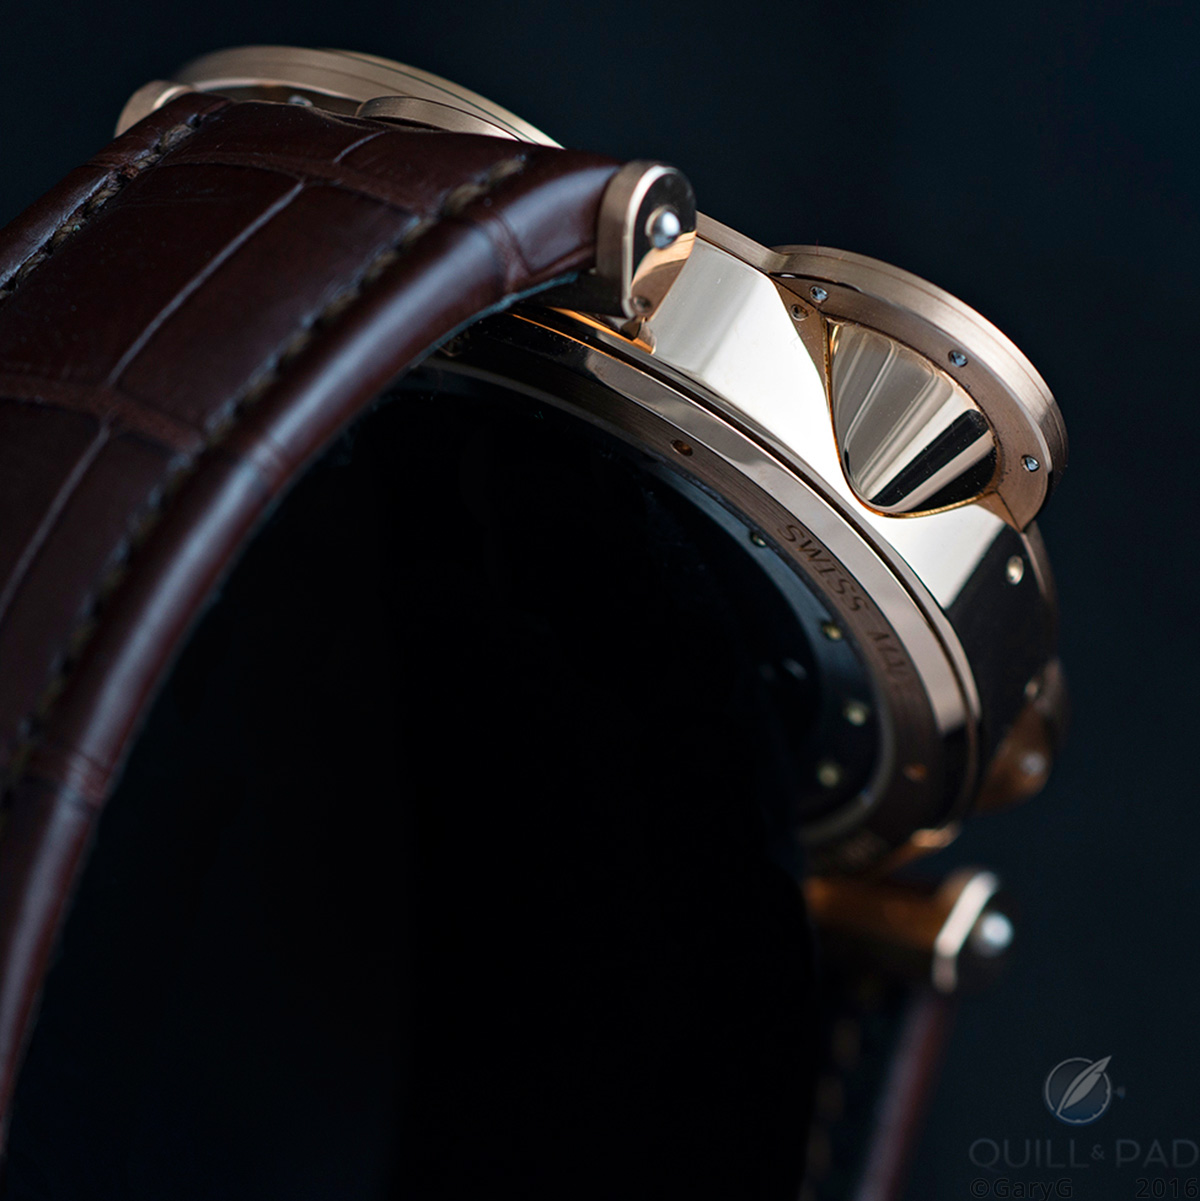 Parting shot: Vianney Halter Antiqua in pink gold